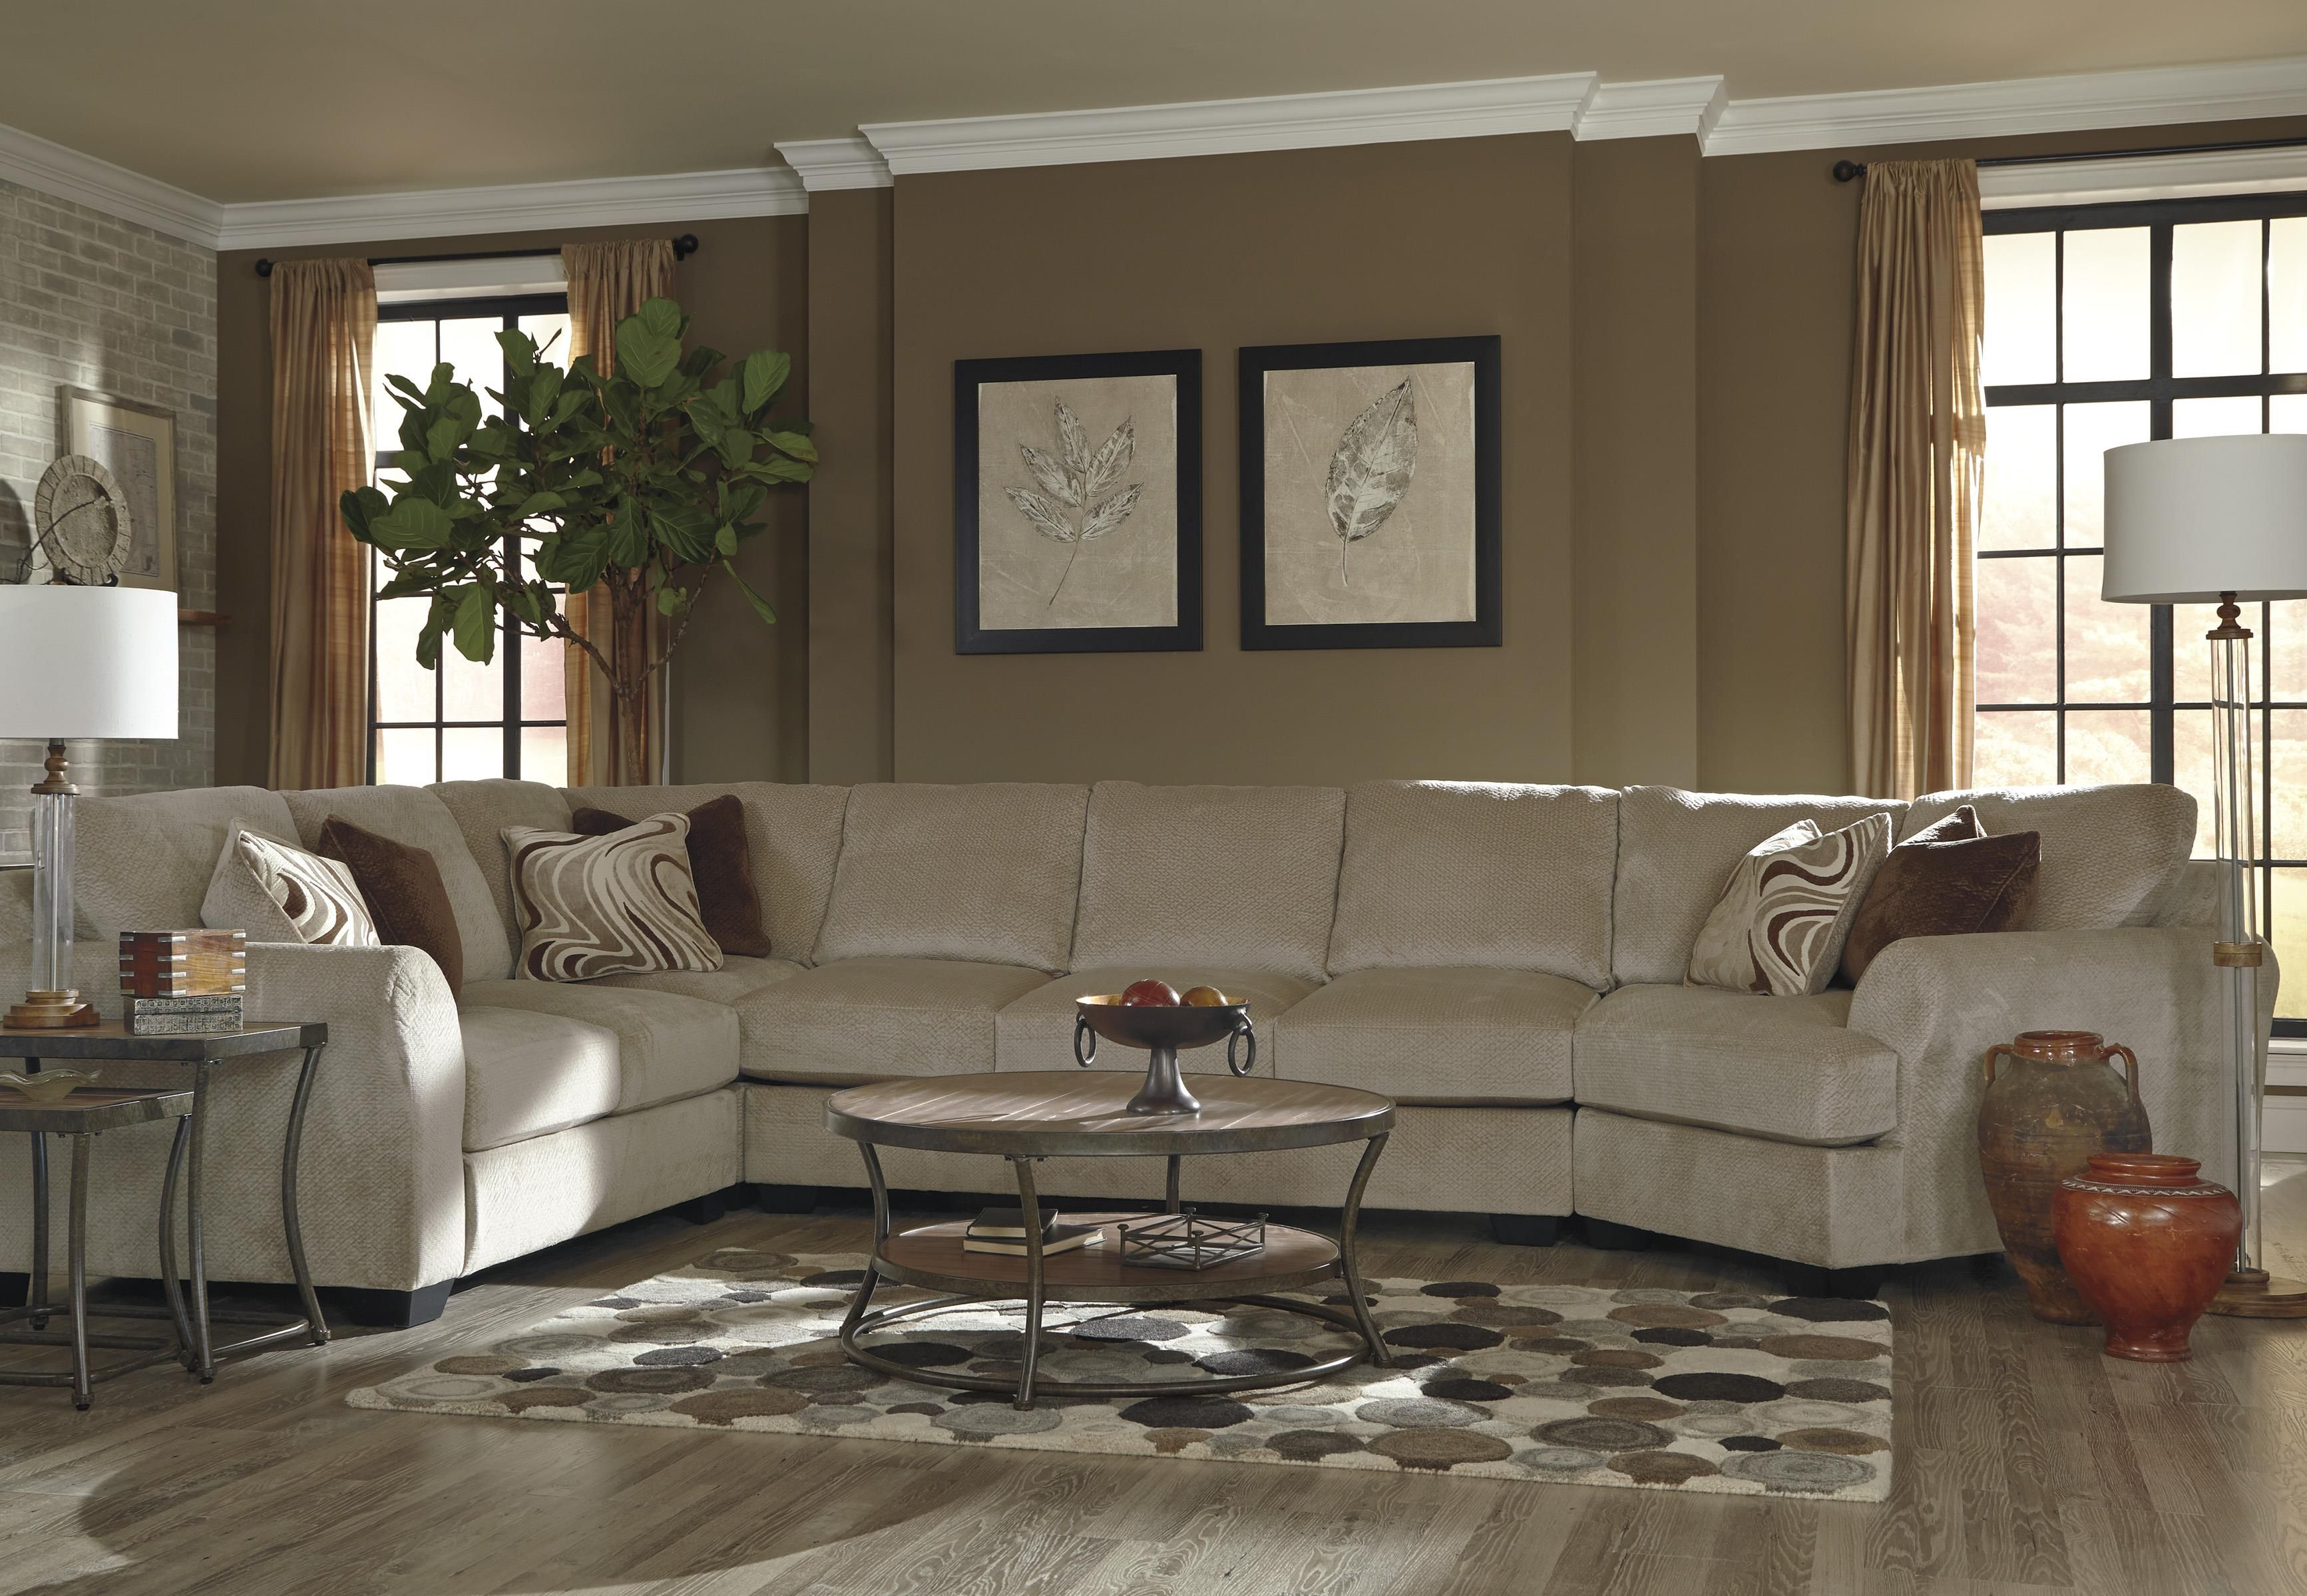 Pleasing Hazes 4 Piece Sectional W Armless Sofa Furniture Couch Bralicious Painted Fabric Chair Ideas Braliciousco